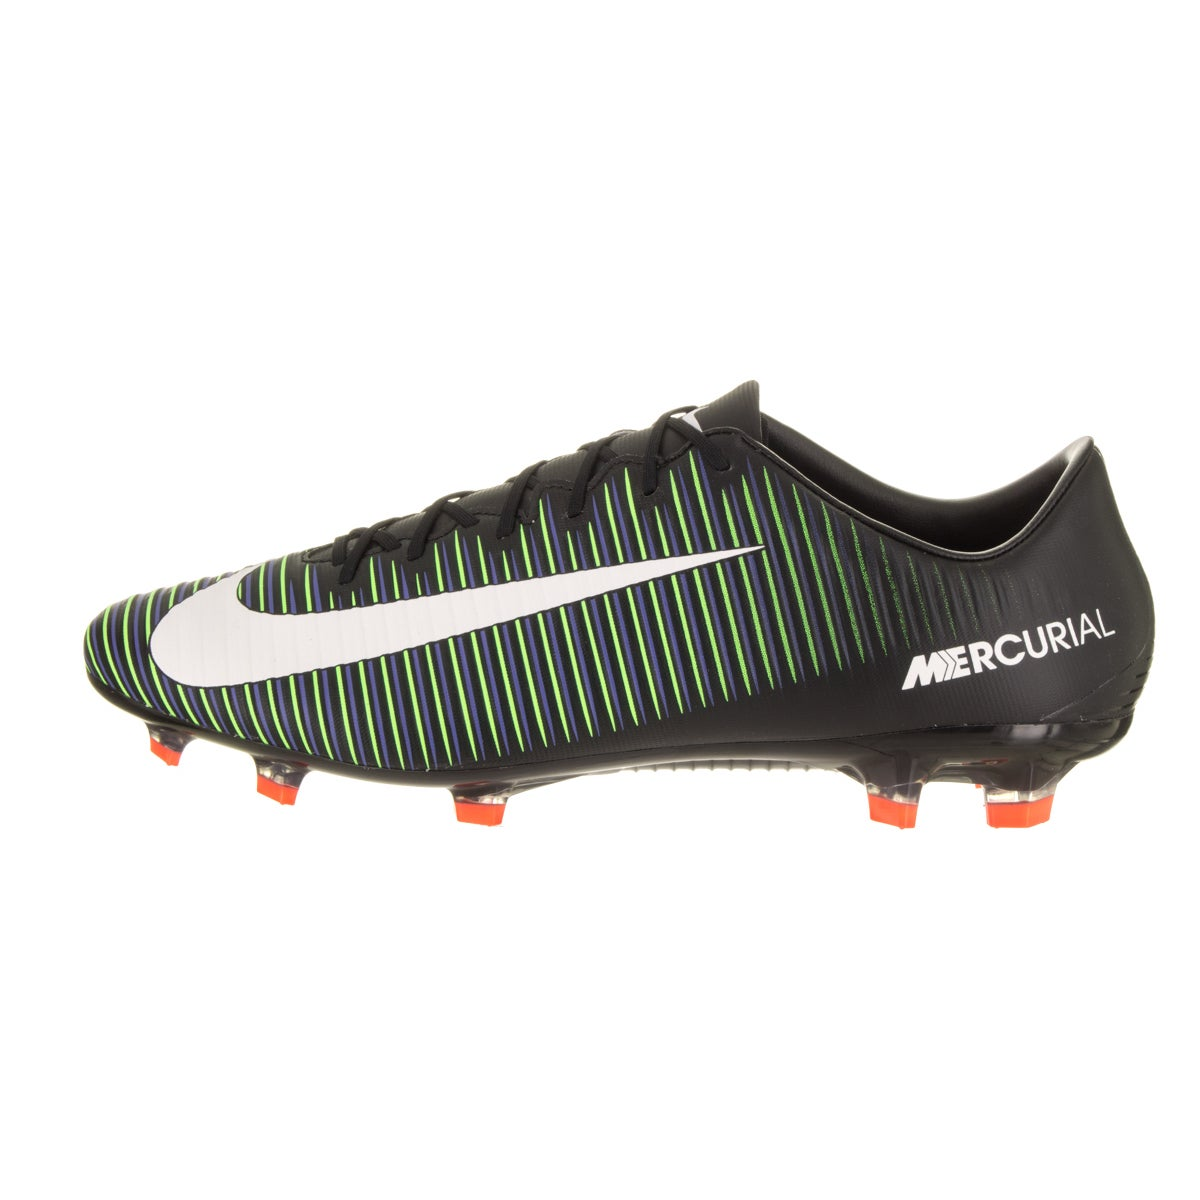 fd3dcb6ae6c Shop Nike Men s Mercurial Veloce III Fg Black Synthetic Leather Soccer  Cleats - Free Shipping Today - Overstock - 14396601